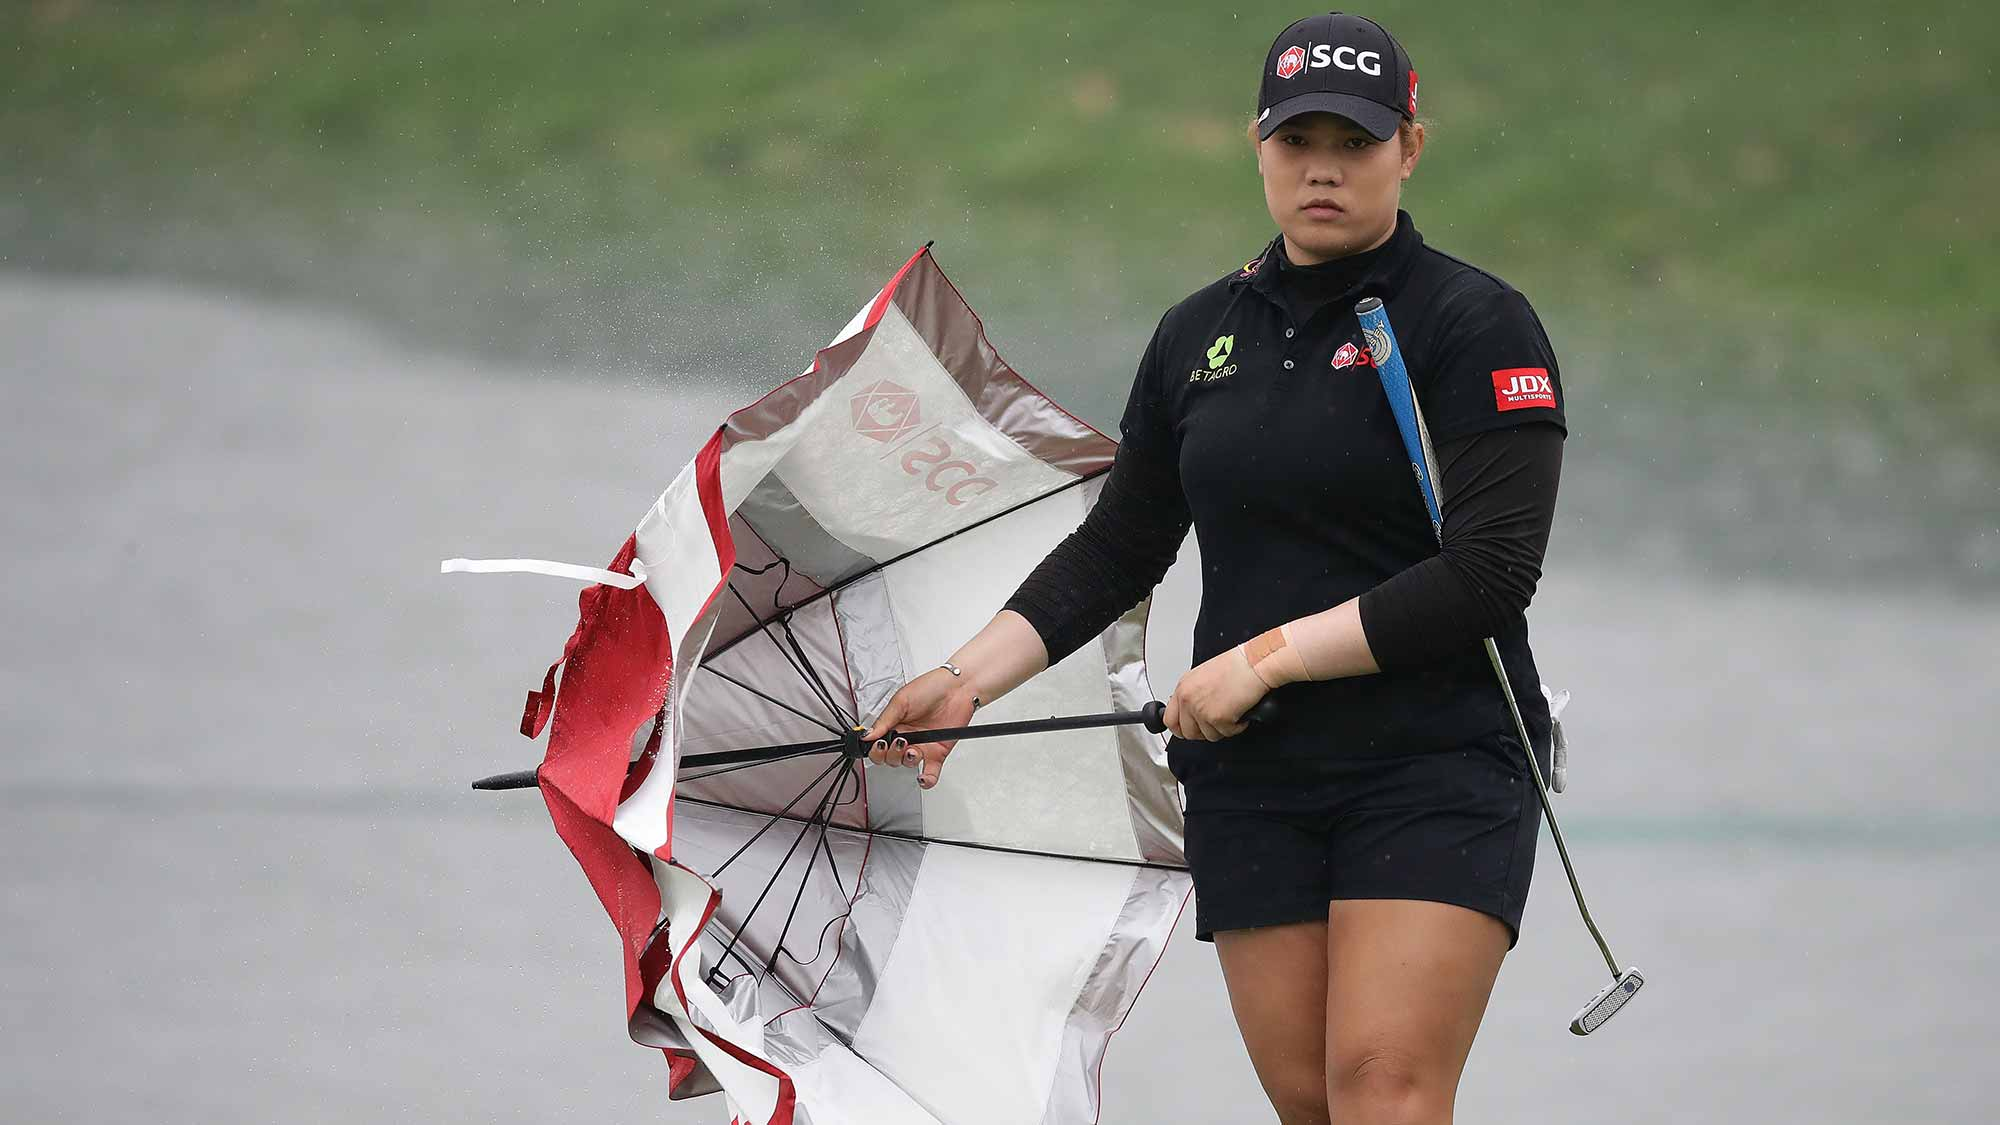 Ariya Jutanugarn of Thailand wear black clothing to mourn the death of King Bhumibol on the 18th green during the final round of the LPGA KEB-Hana Bank Championship at the Sky 72 Golf Club Ocean Course